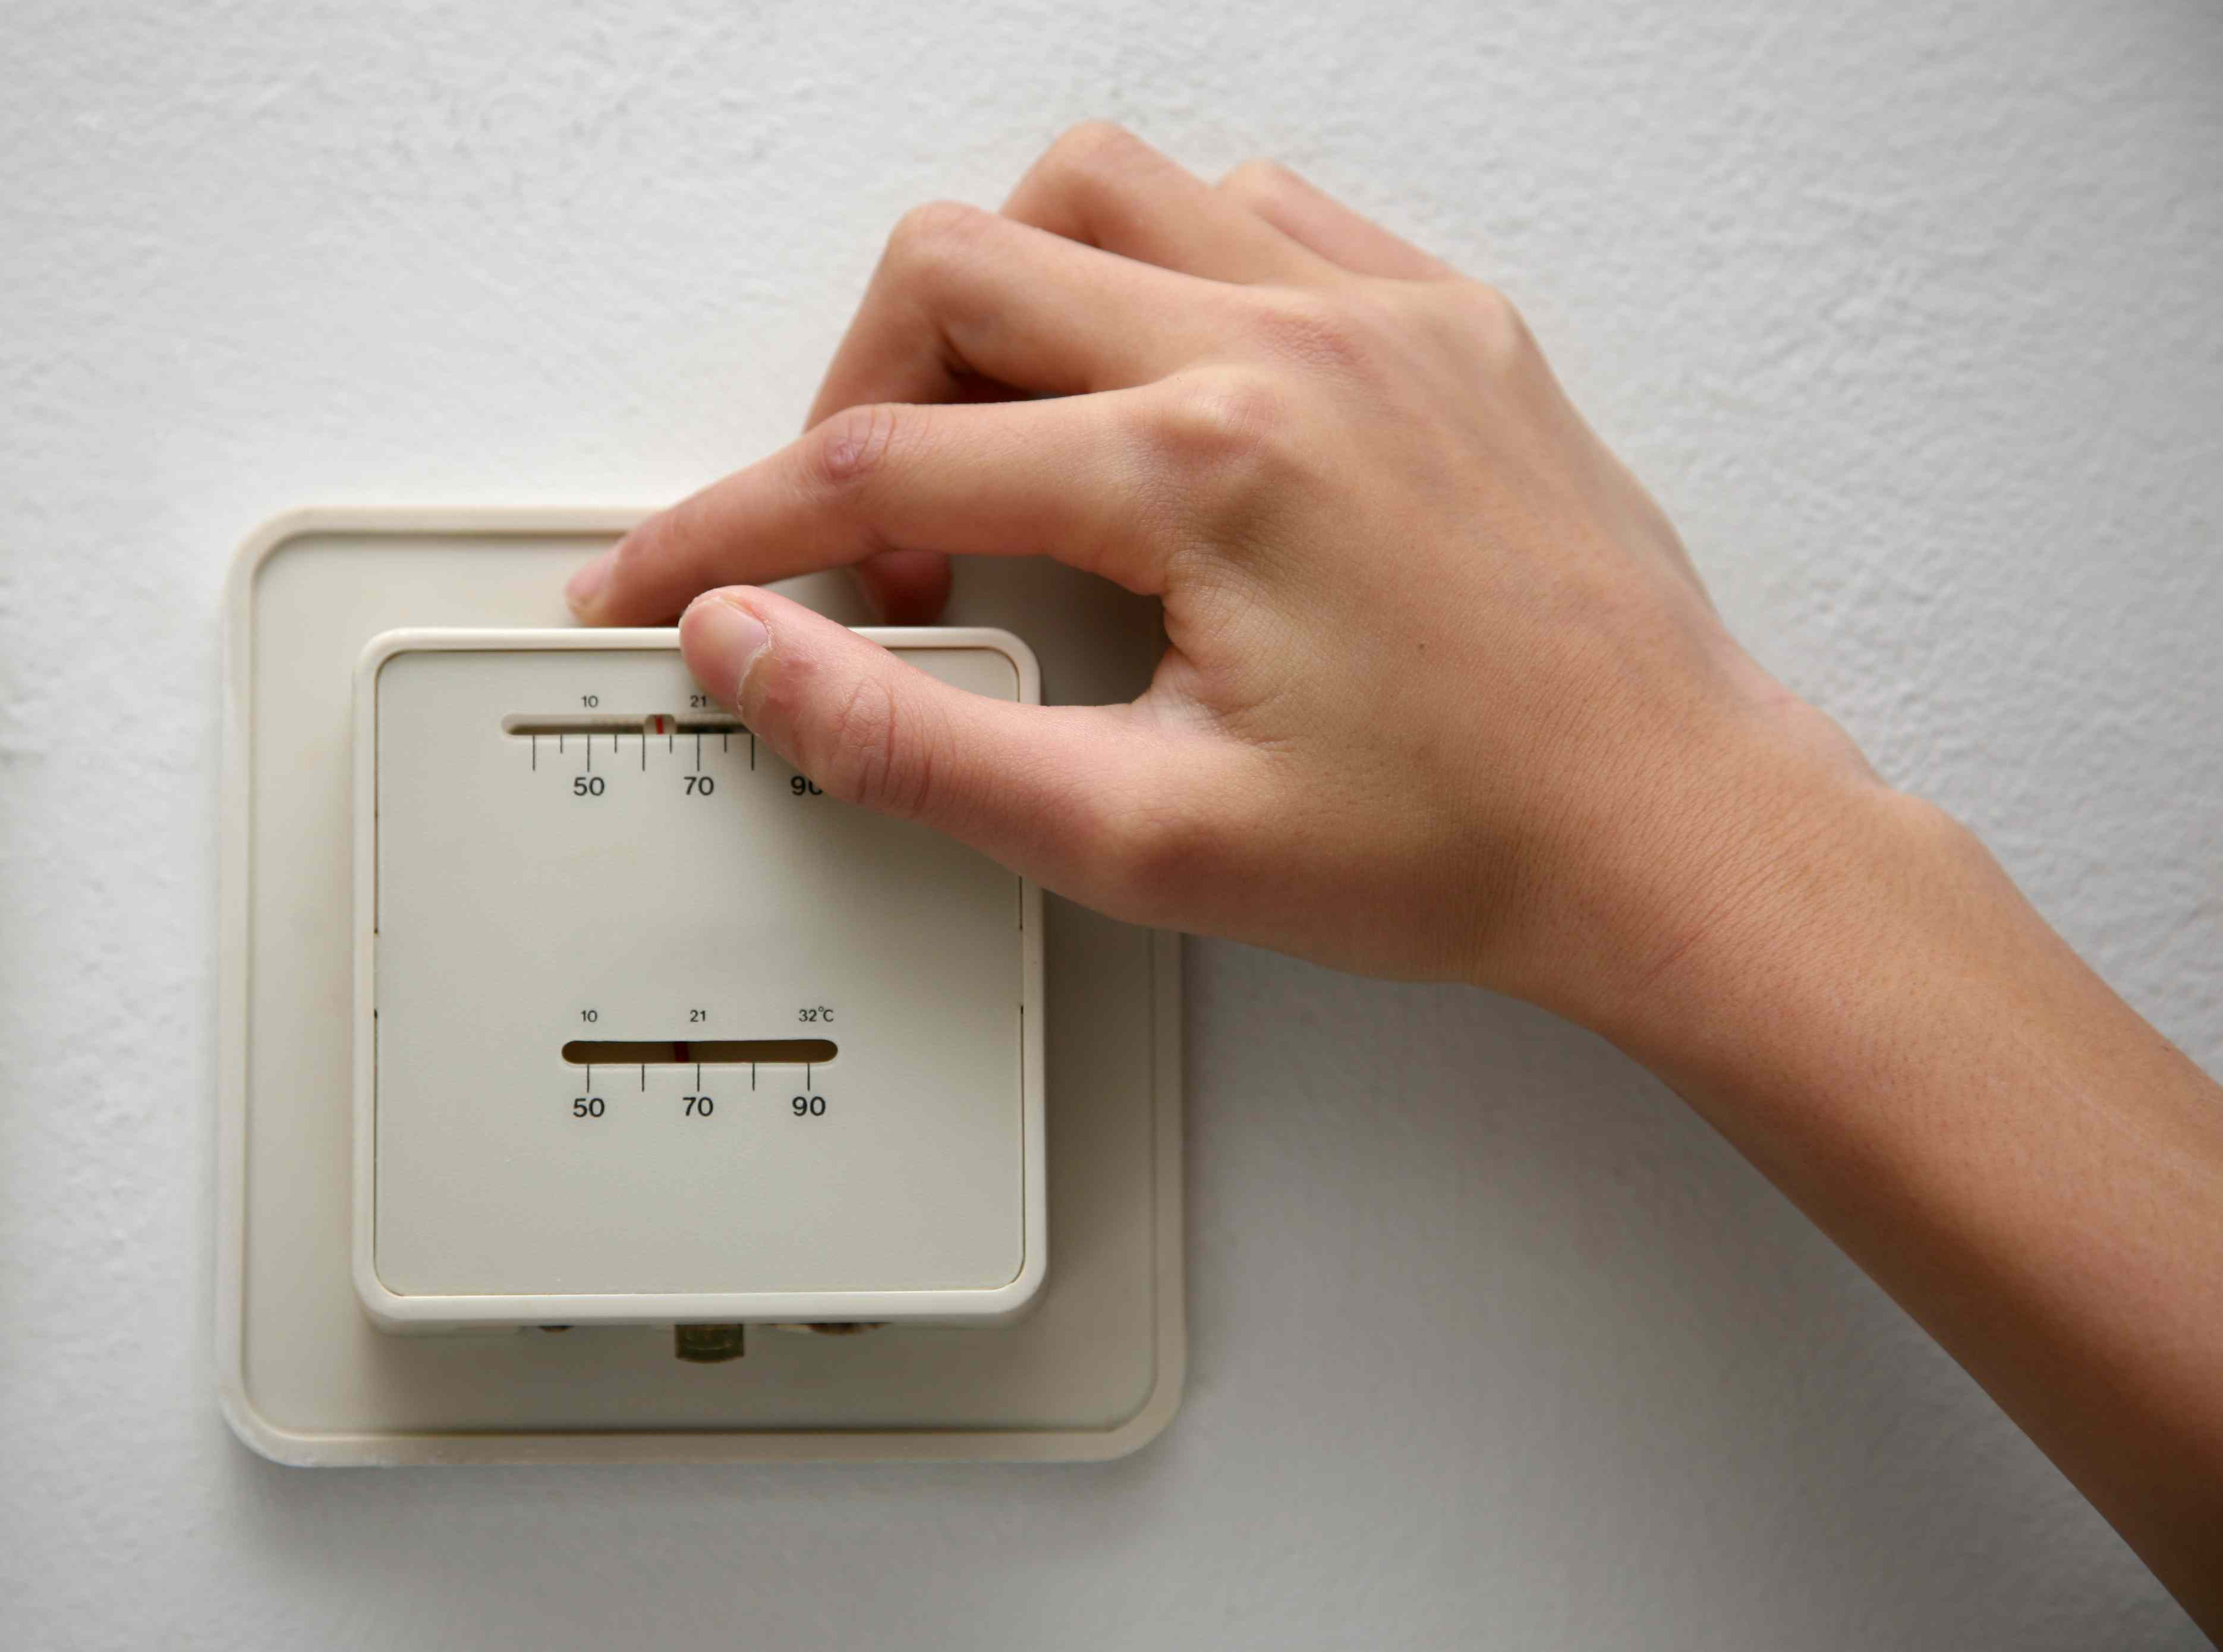 10 Ways To Reduce Your Familys Carbon Footprint Label The Wires Leading Into Old Thermostat Adjusting Temperature On An